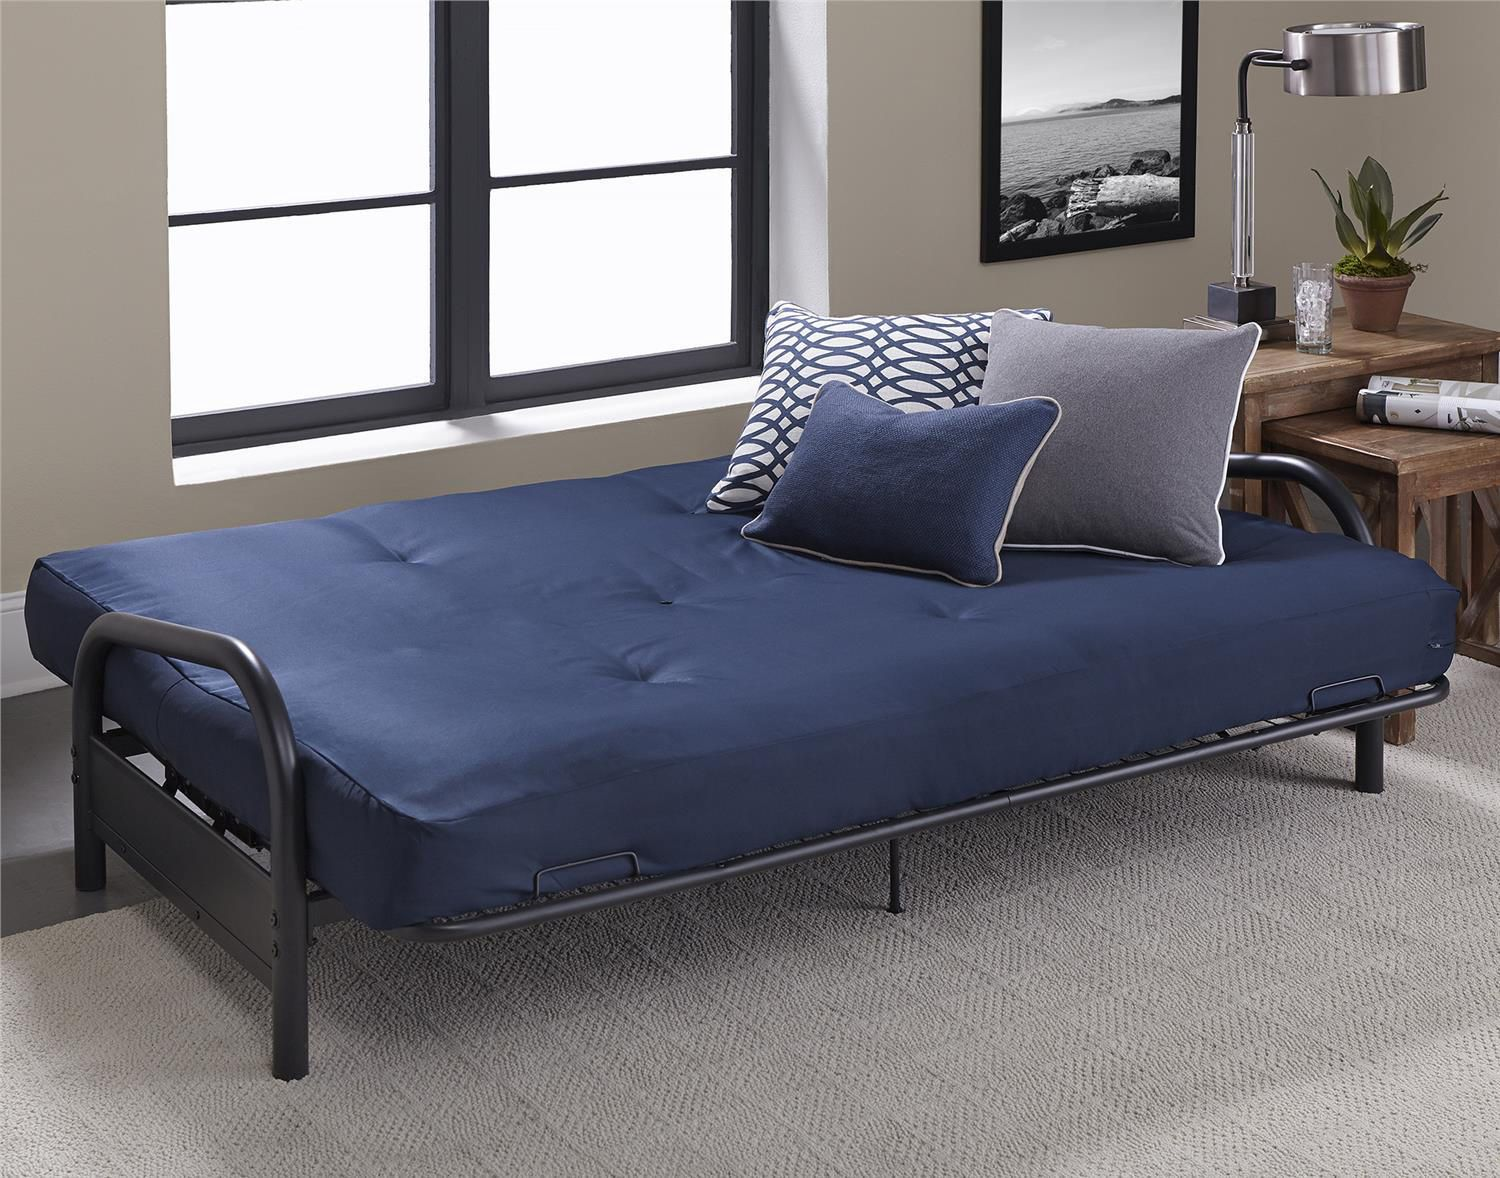 chair garden sales bed simple futon free shipping victor overstock home today product living